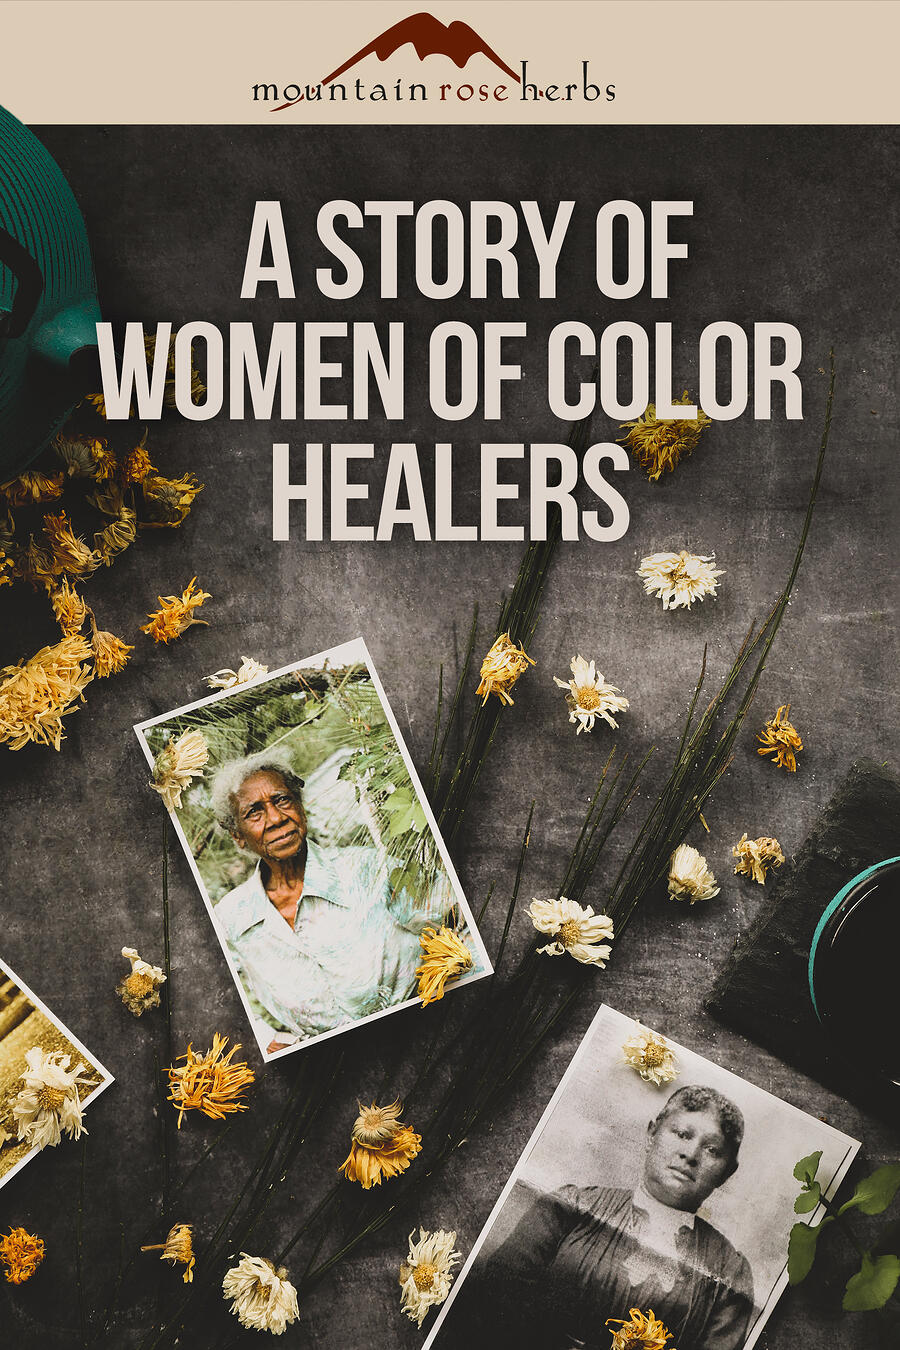 A Story of Women of Color Healers